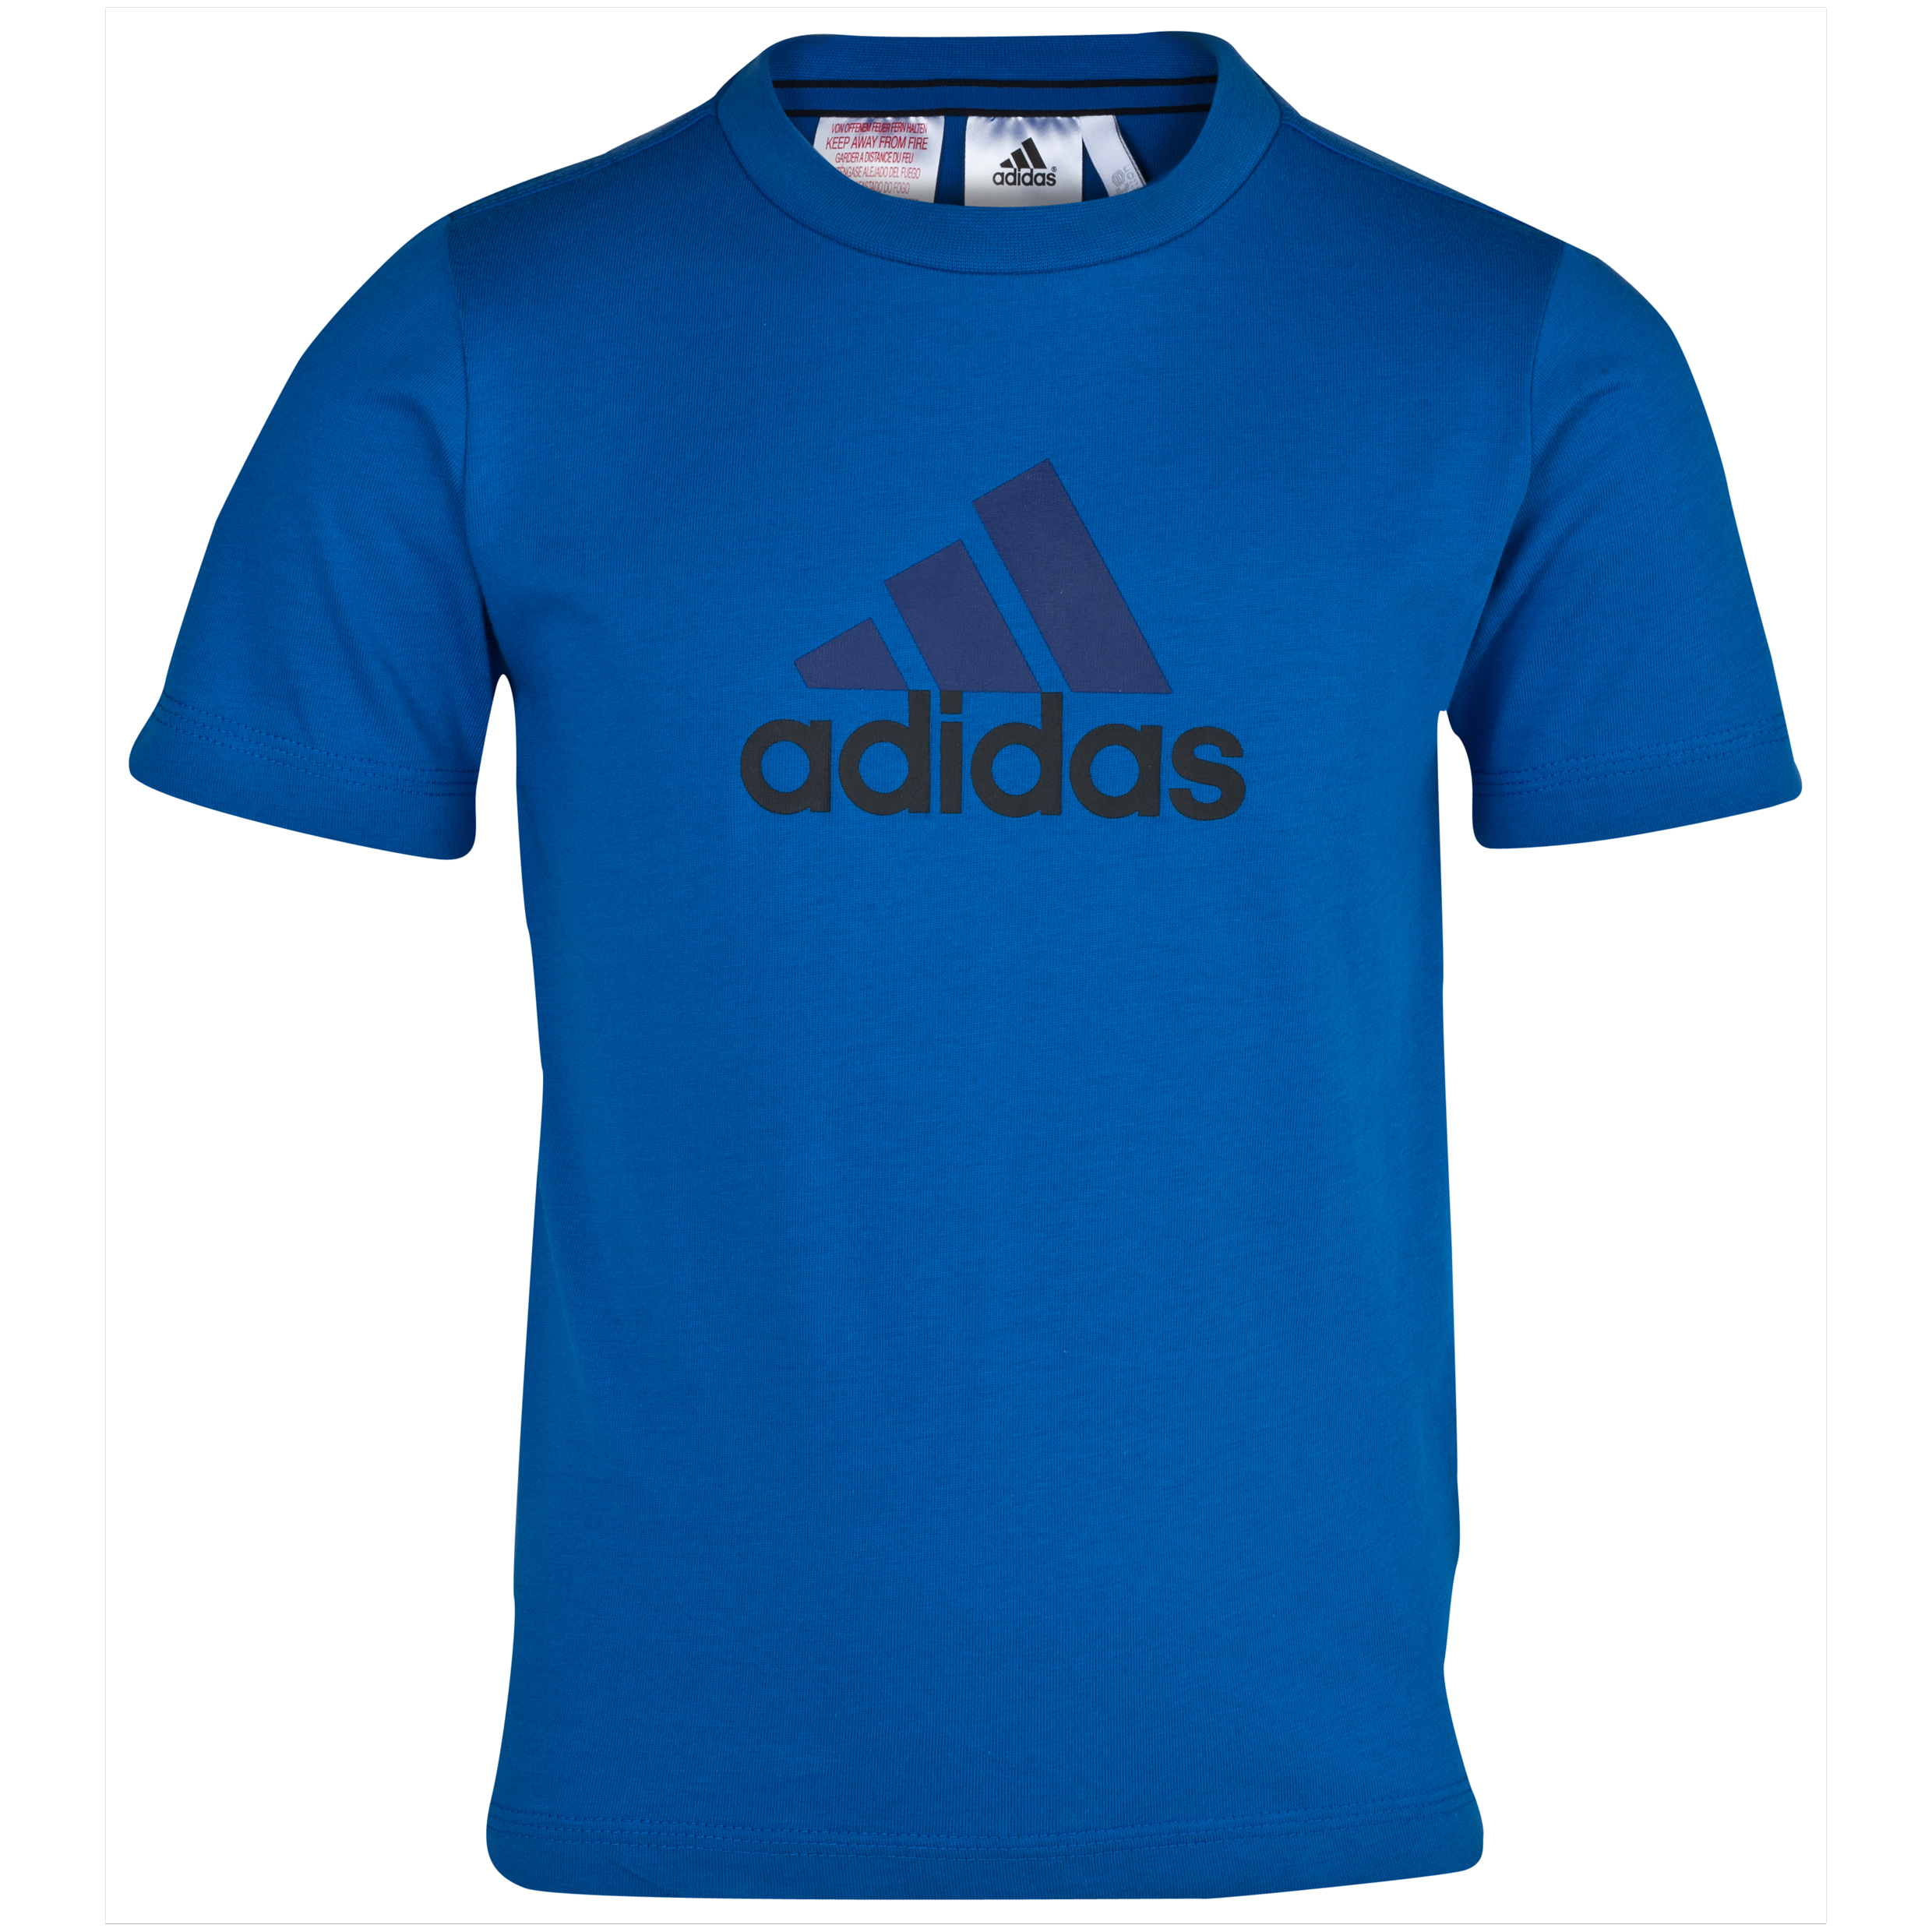 Chelsea adidas Essentials T-Shirt Kids Blue